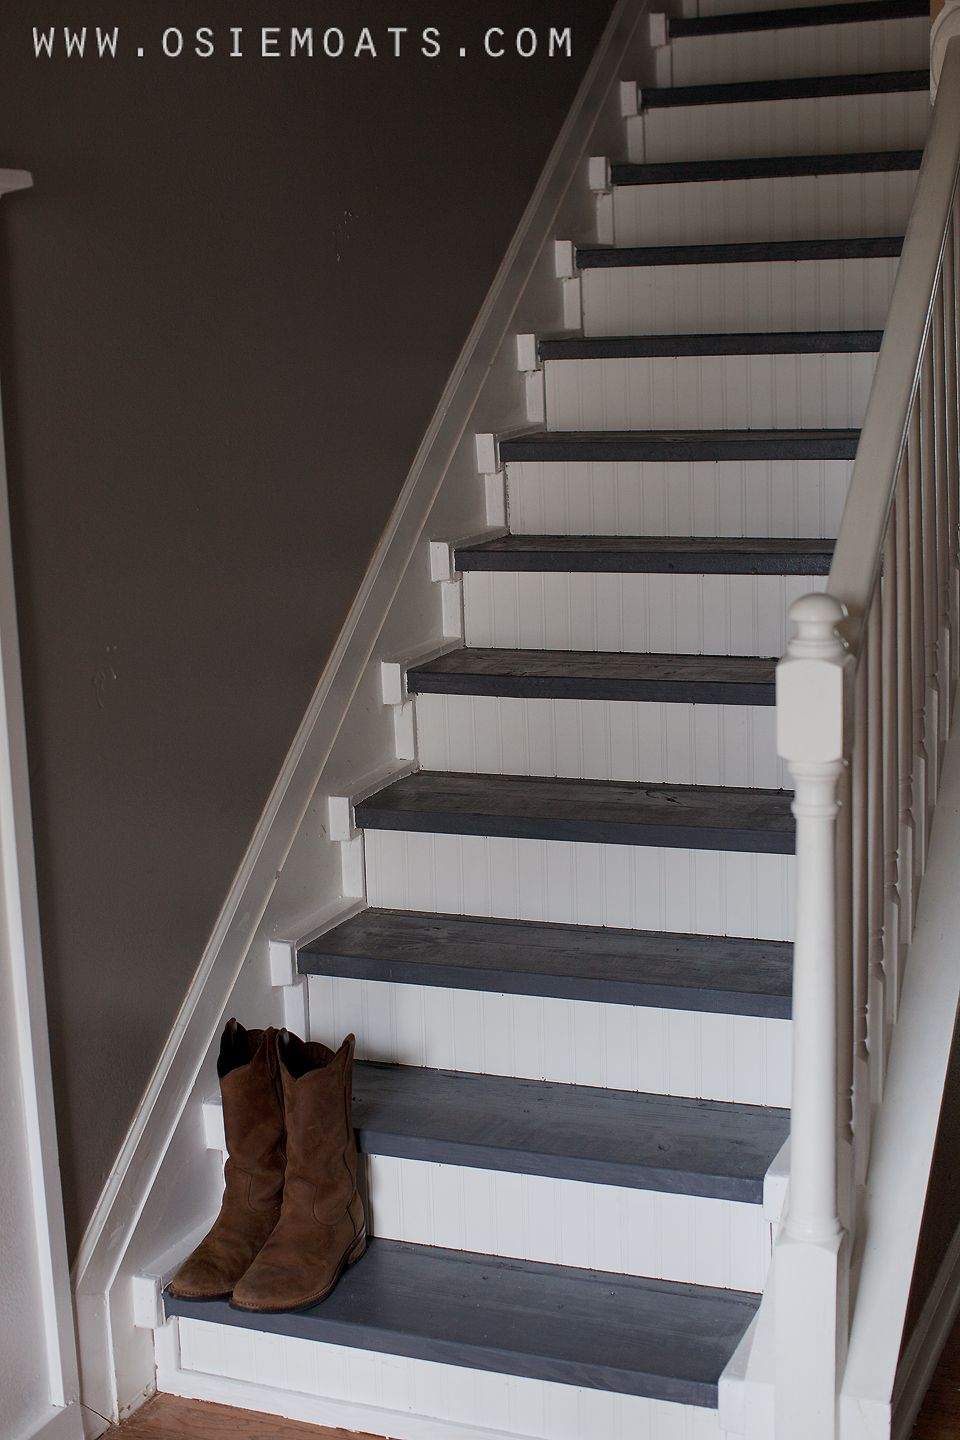 Best Osie Moats Diy Lifestyle Decorating Blog Diy 50 Stair 640 x 480